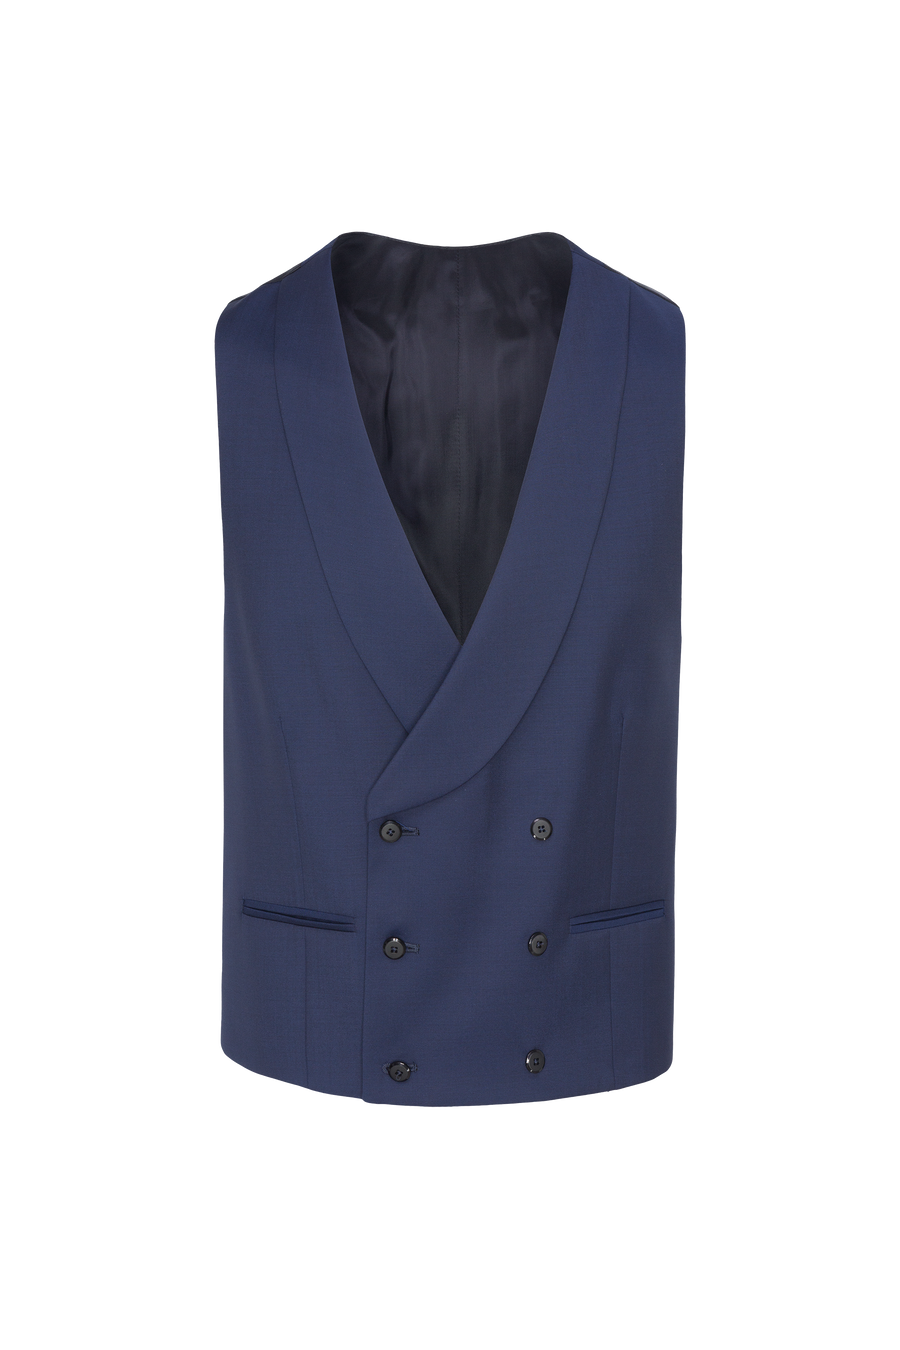 Ink Blue Three-Piece Morning Coat 3% Wool Vitale Barberis